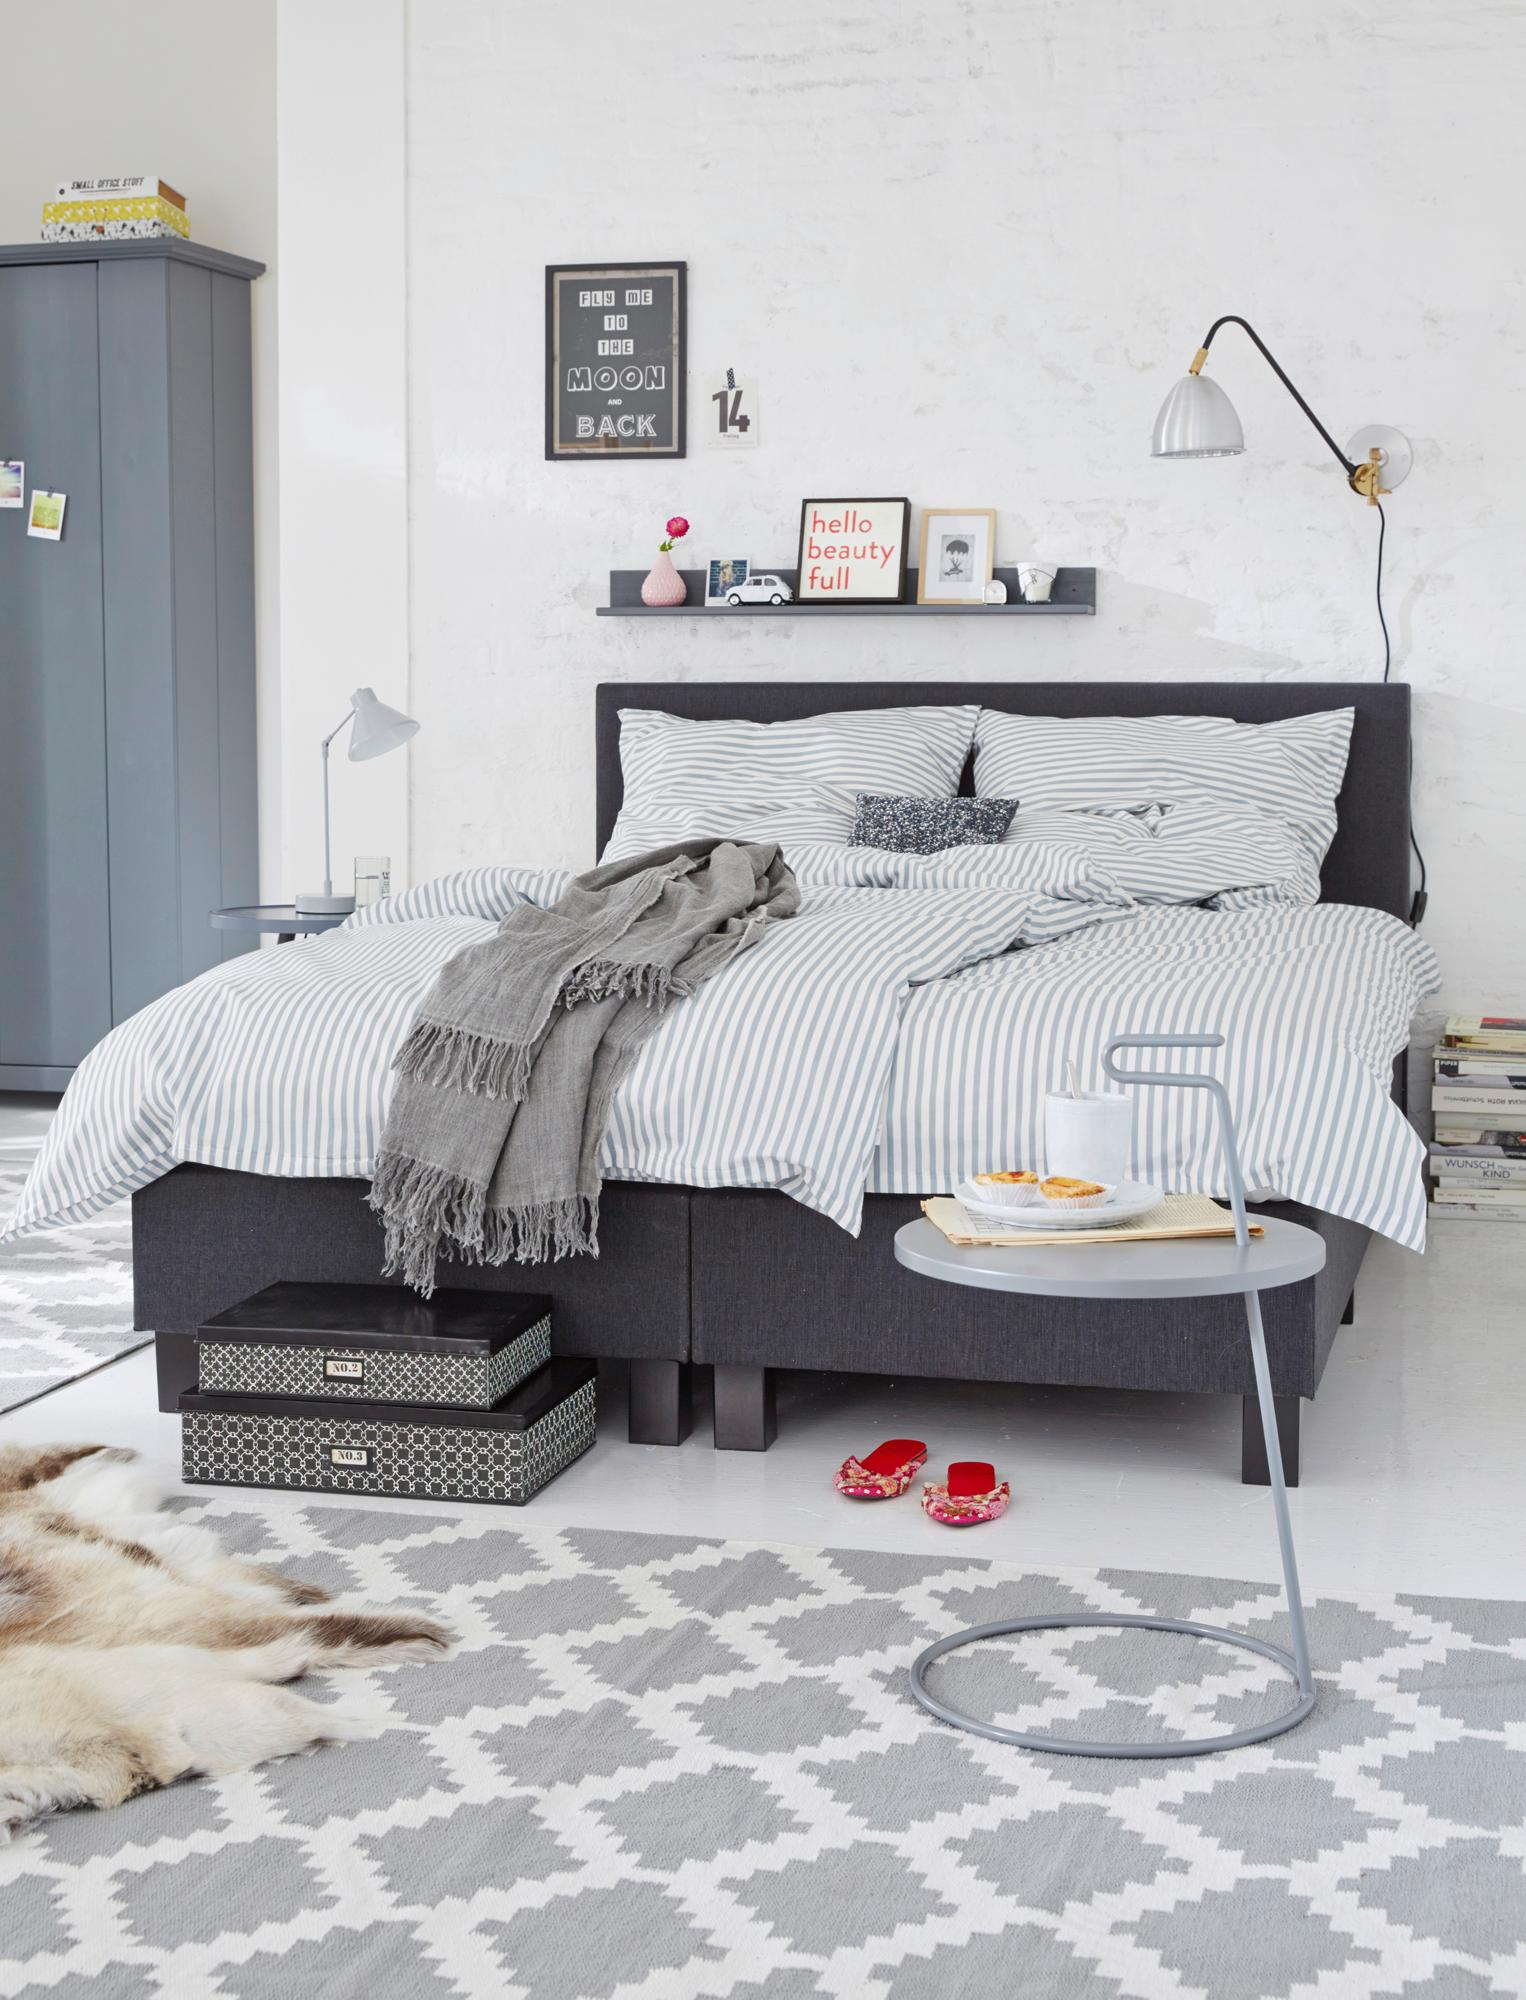 Boxspringbett in Grau #wandregal #bettwäsche #boxspr...